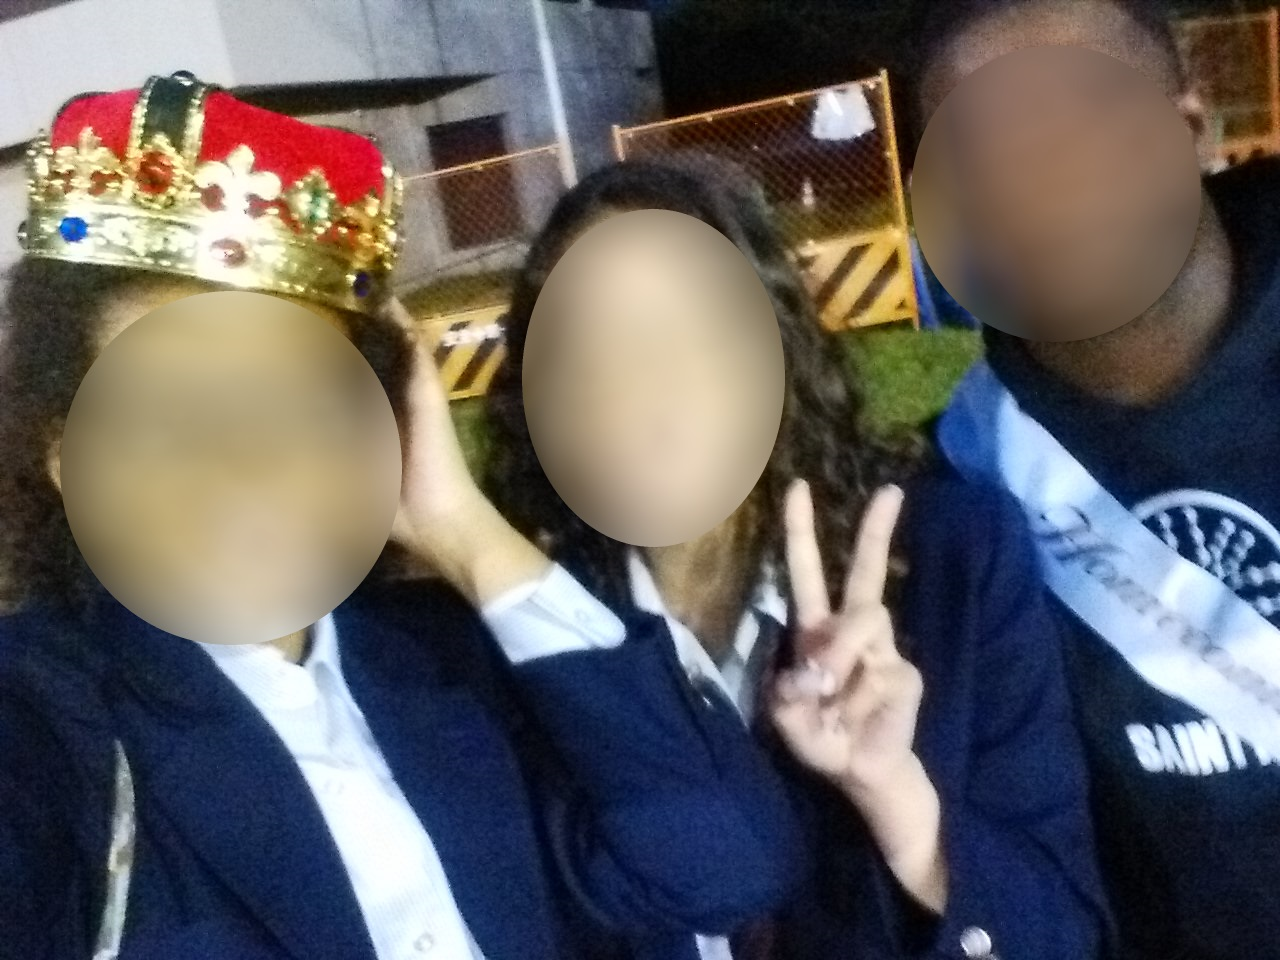 (left to right:) Me with the Homecoming King's crown, Italian girl and the King